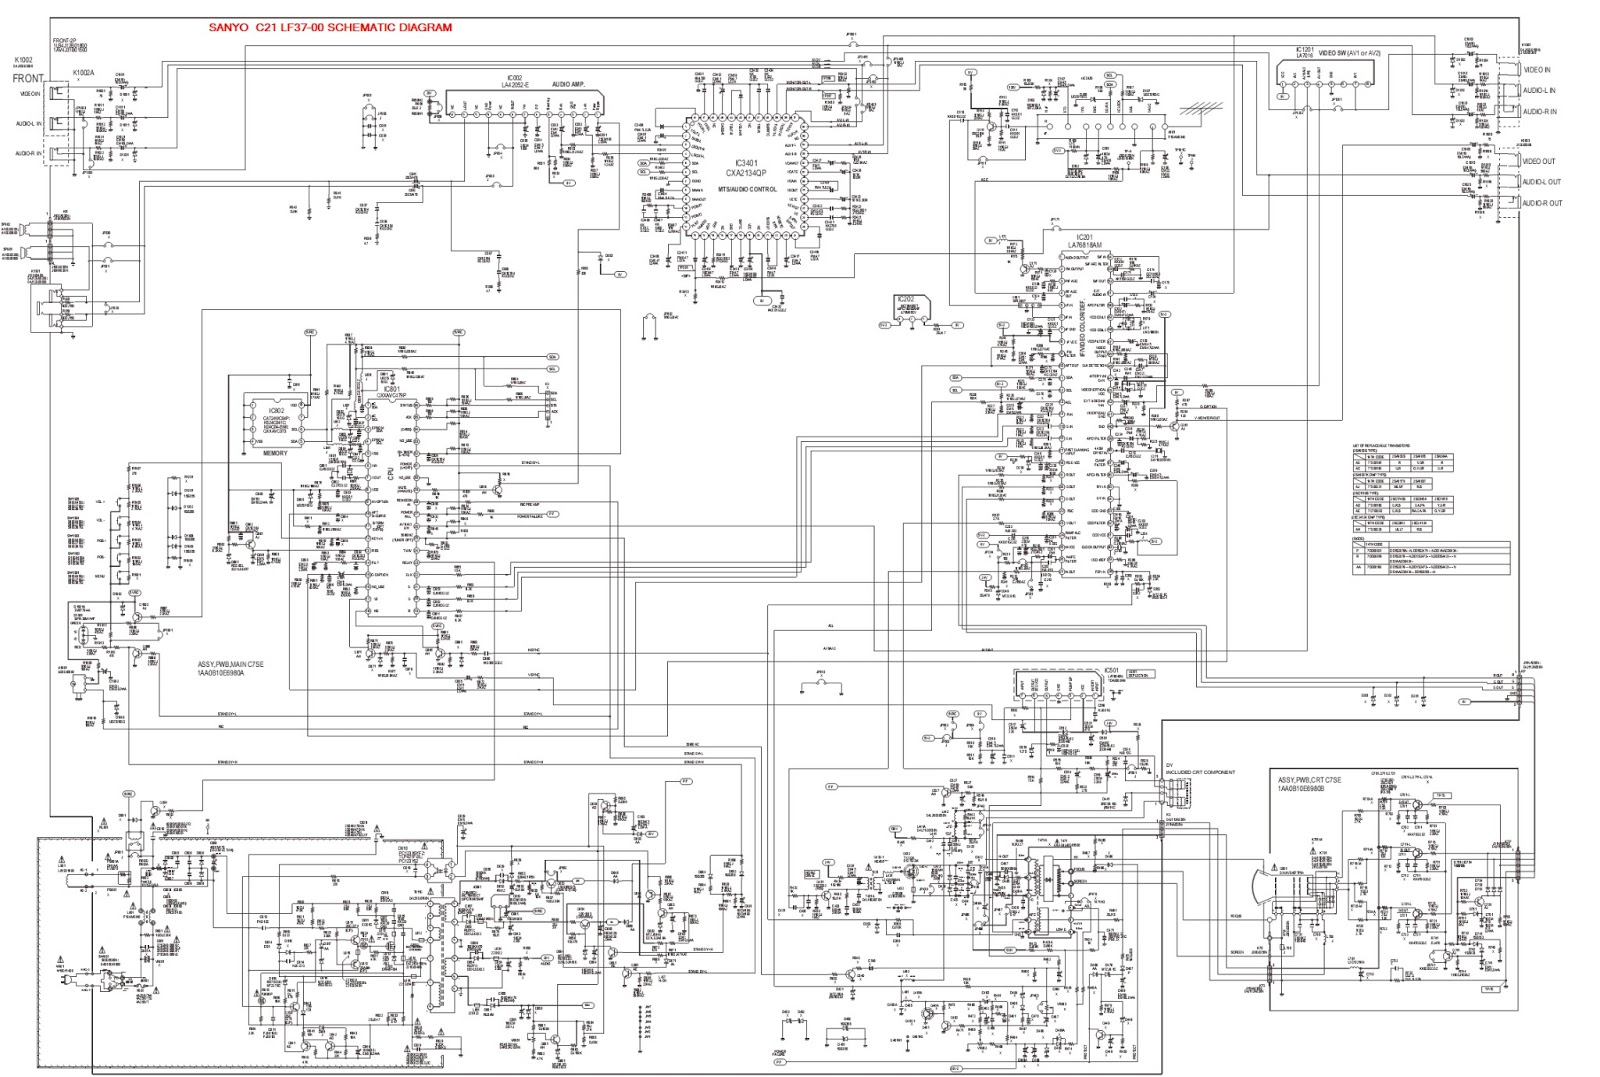 medium resolution of sanyo tv circuit diagram wiring diagram third levelsanyo c21lf37 ctv schematic diagram circuit diagram